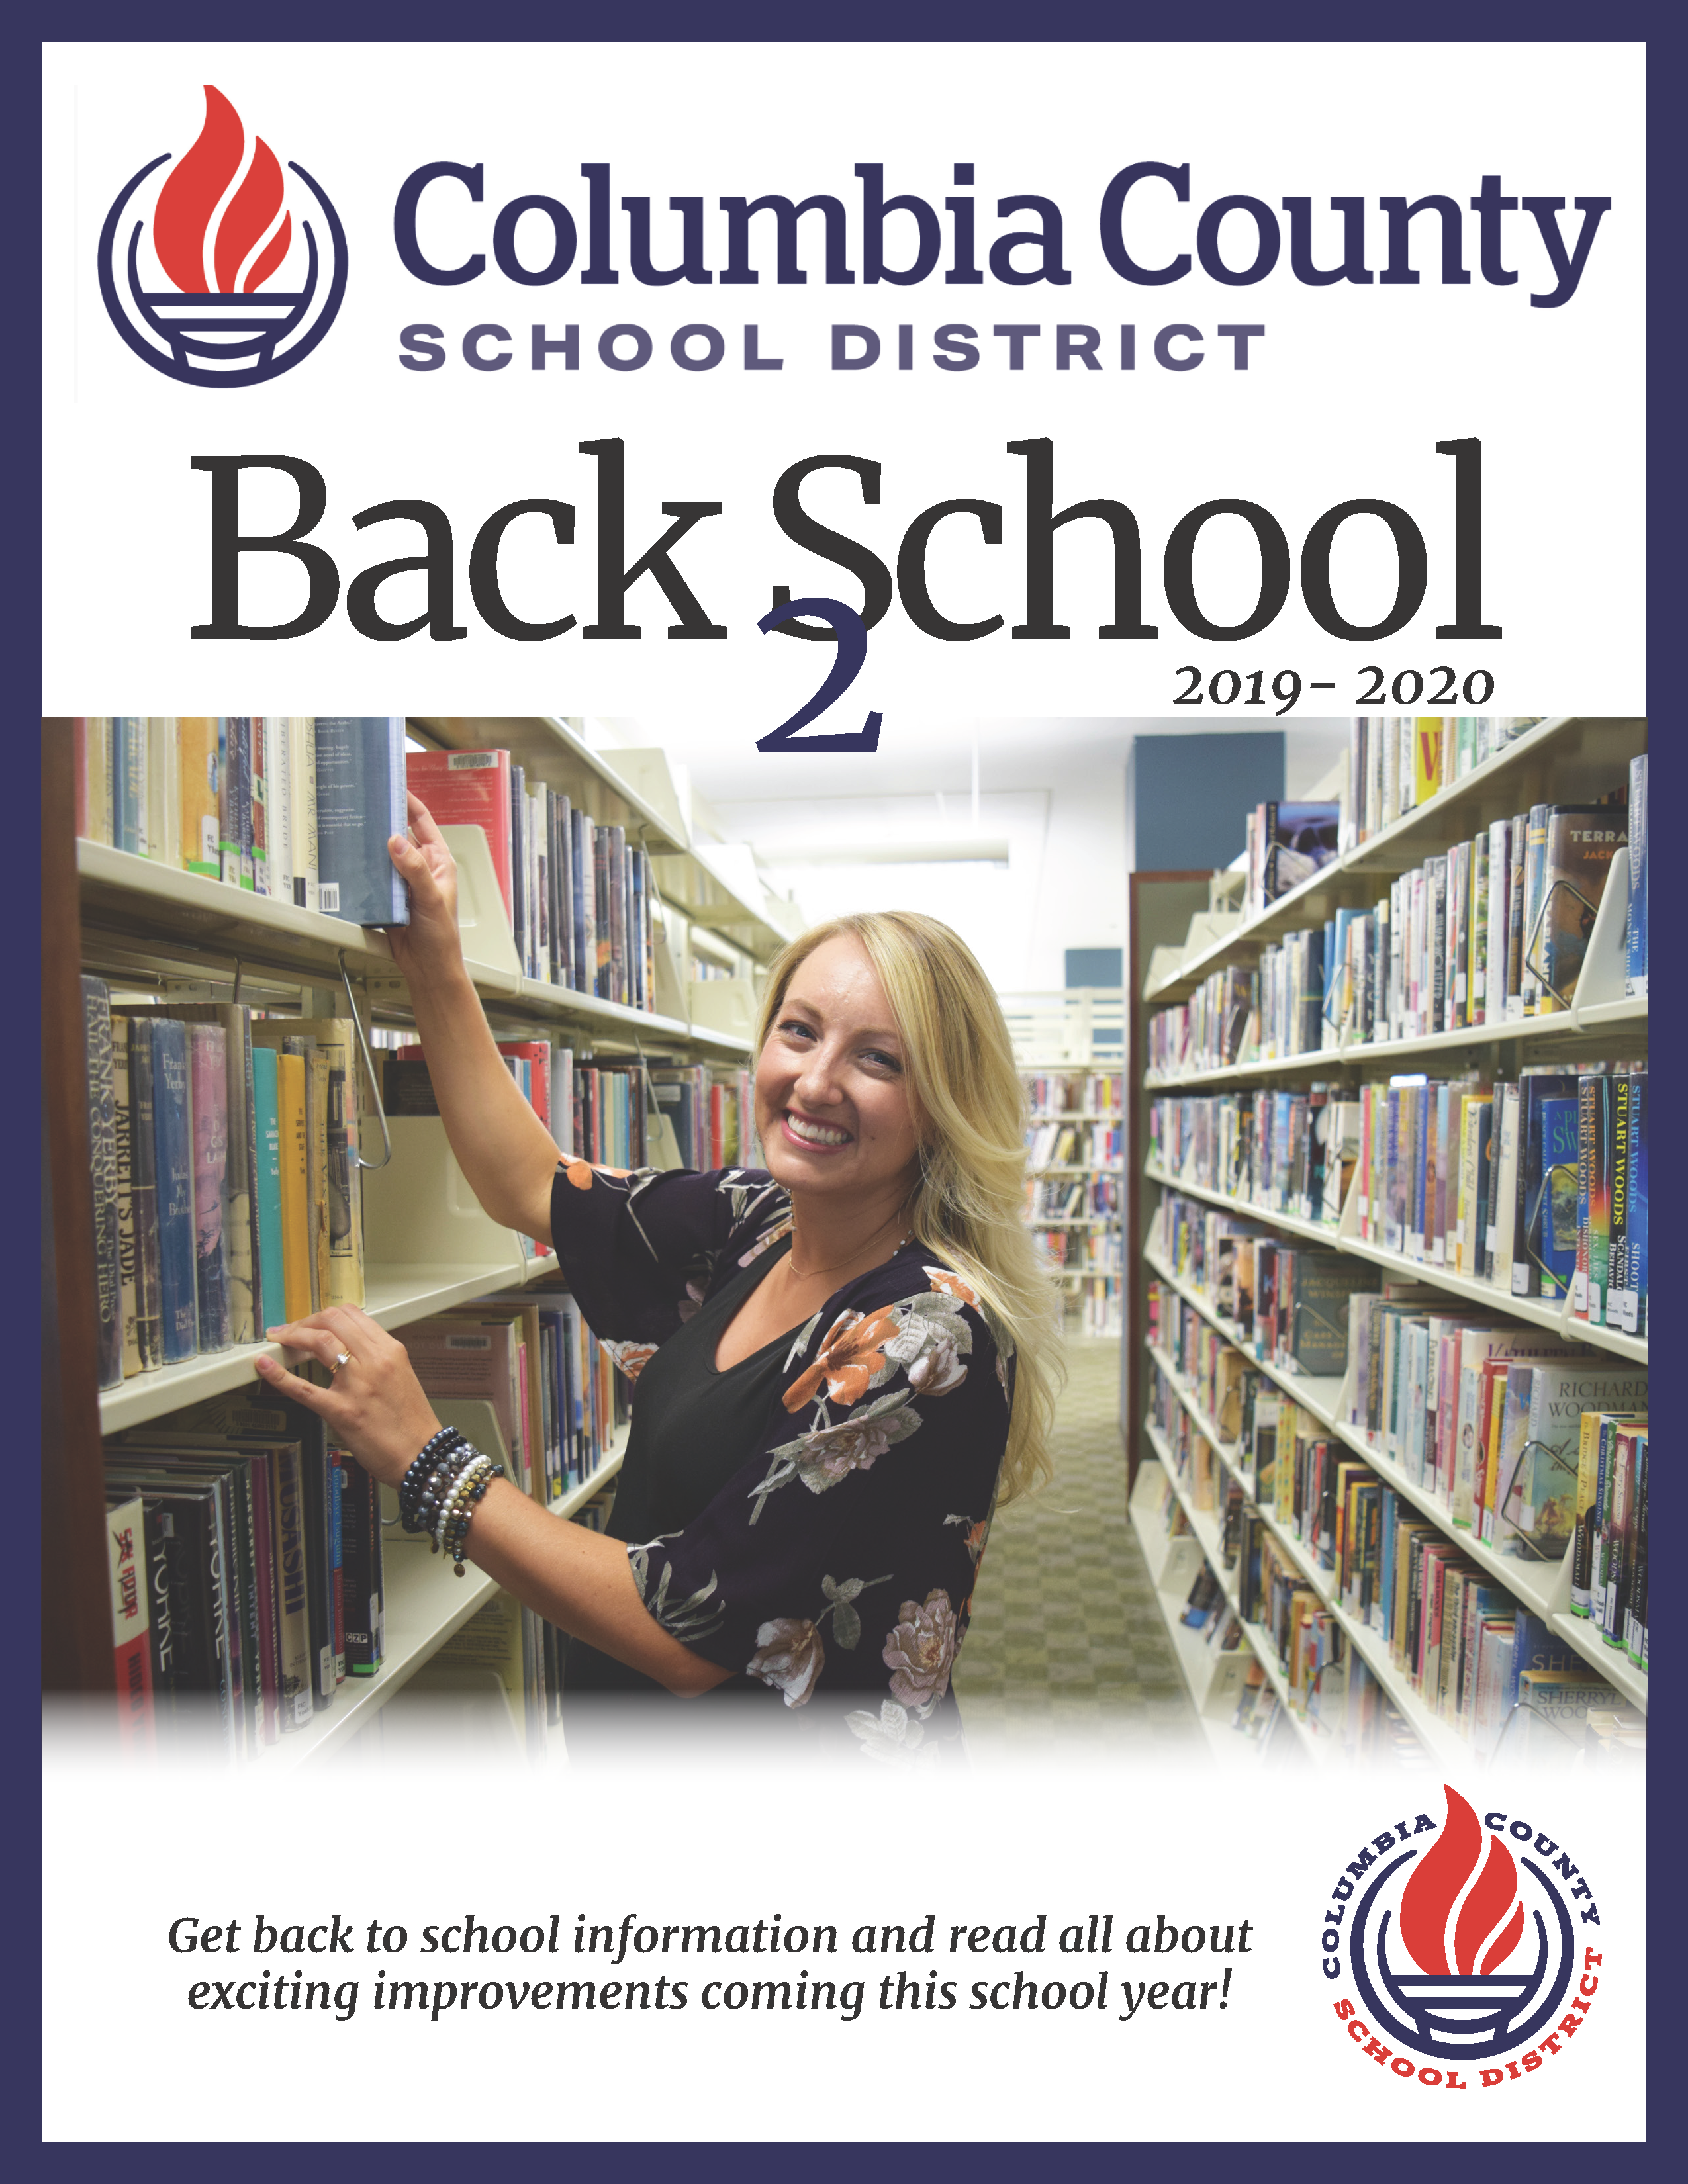 Back 2 school magazine cover